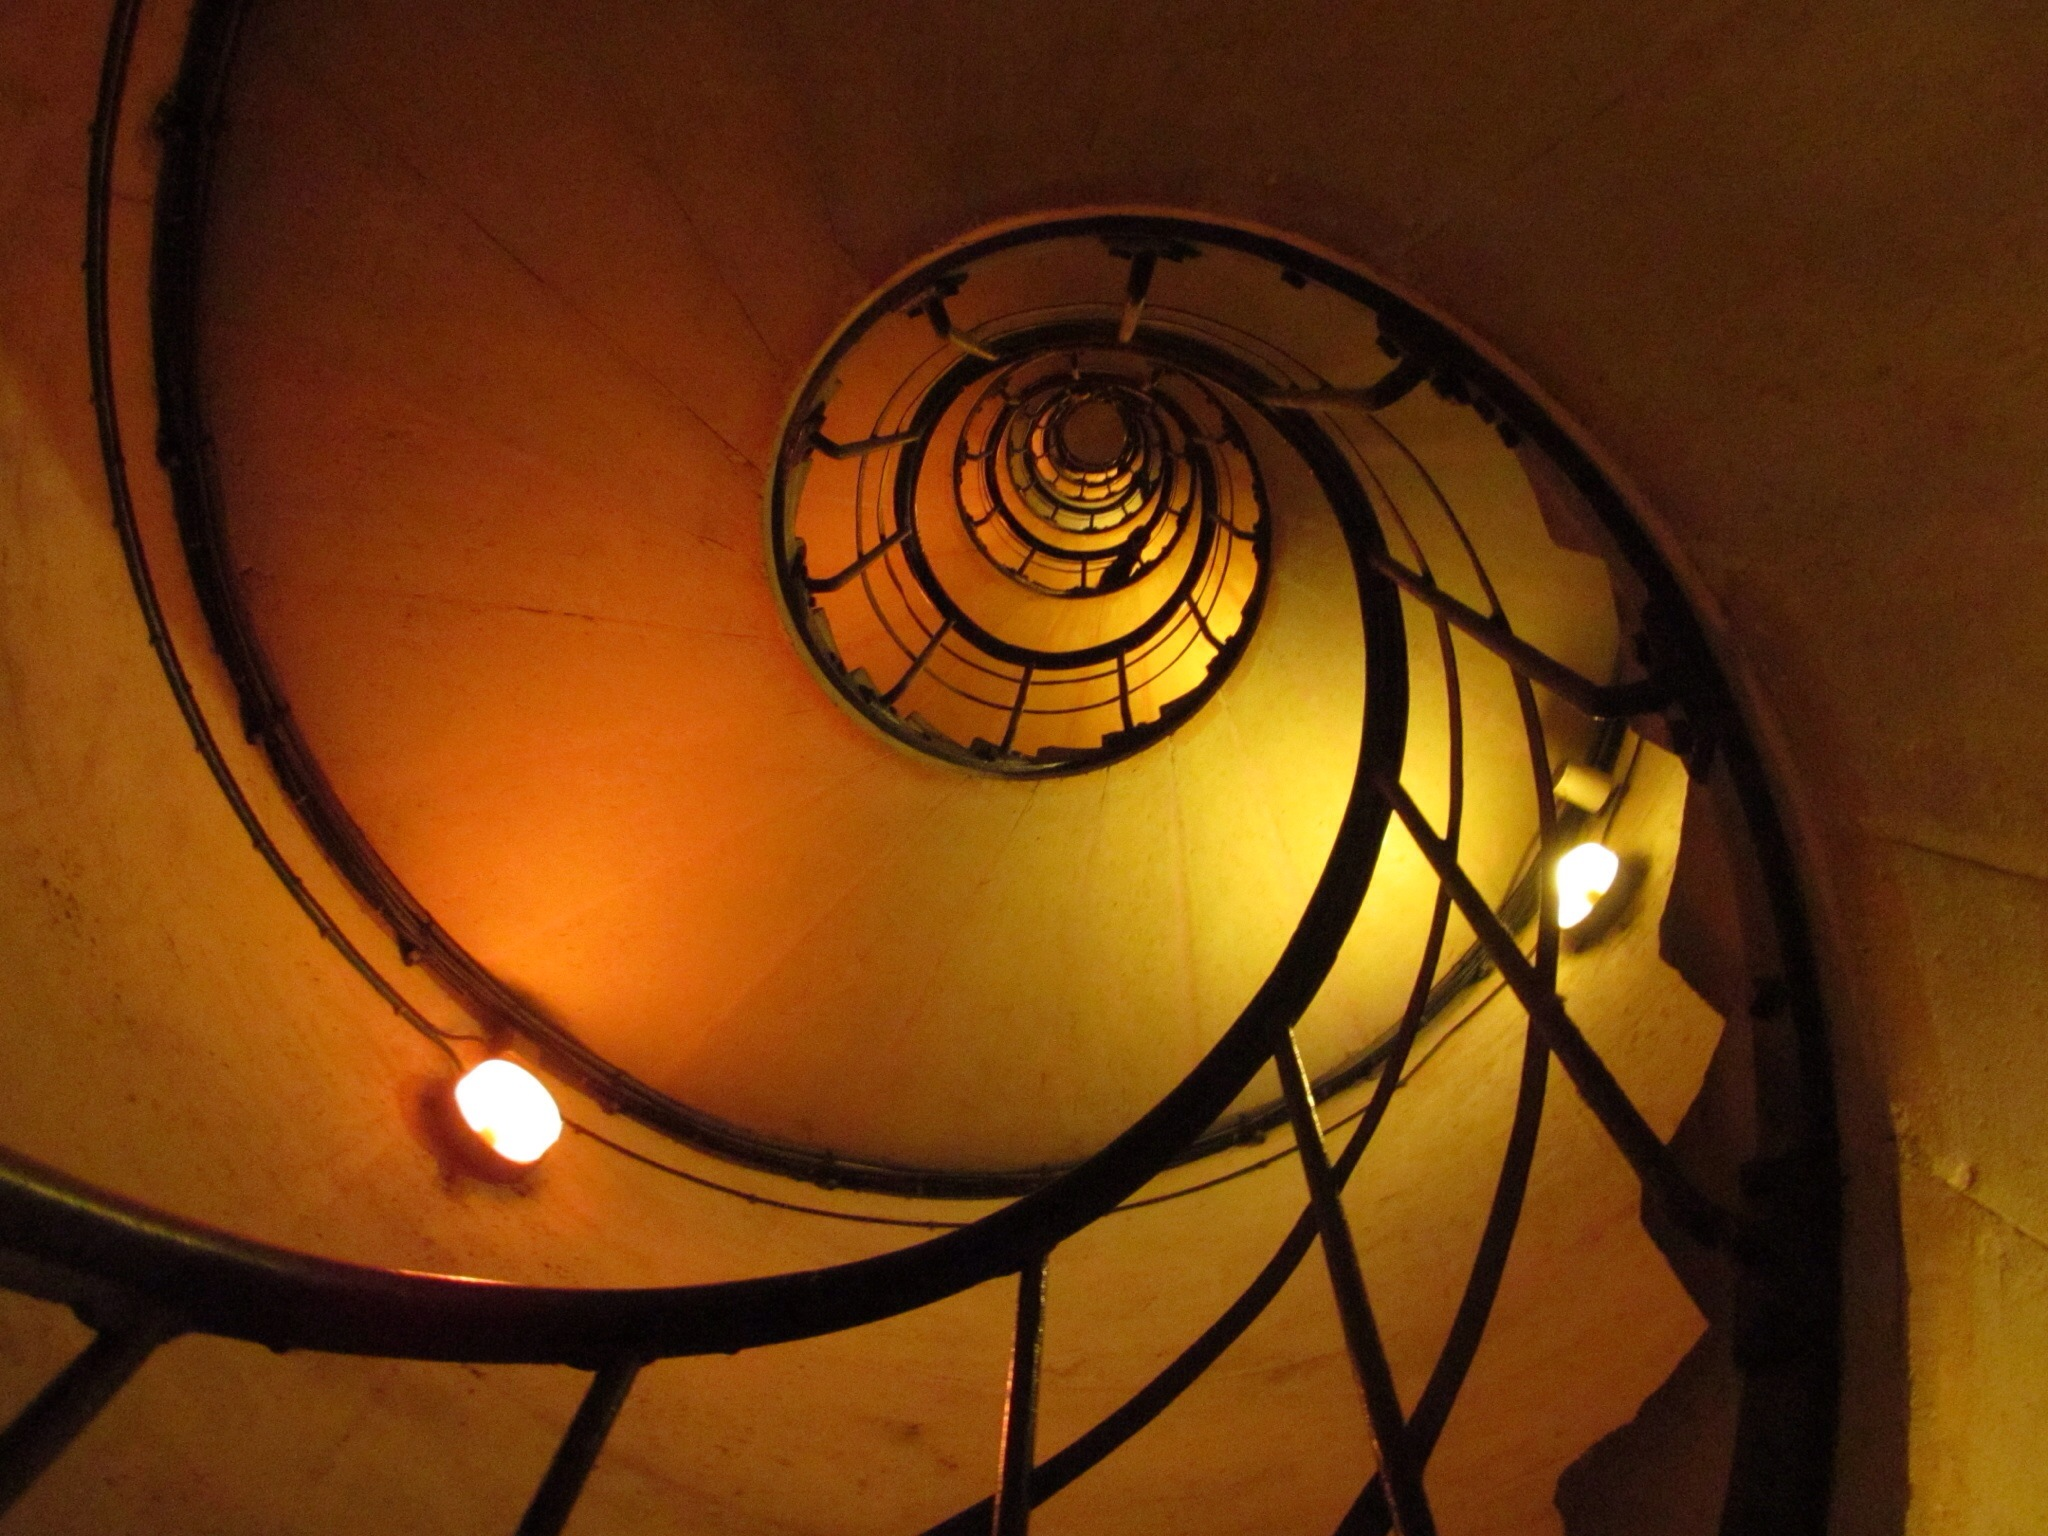 Staircase in the Arc de Triomphe, Paris. Image Credit Mack444 (via Flickr)